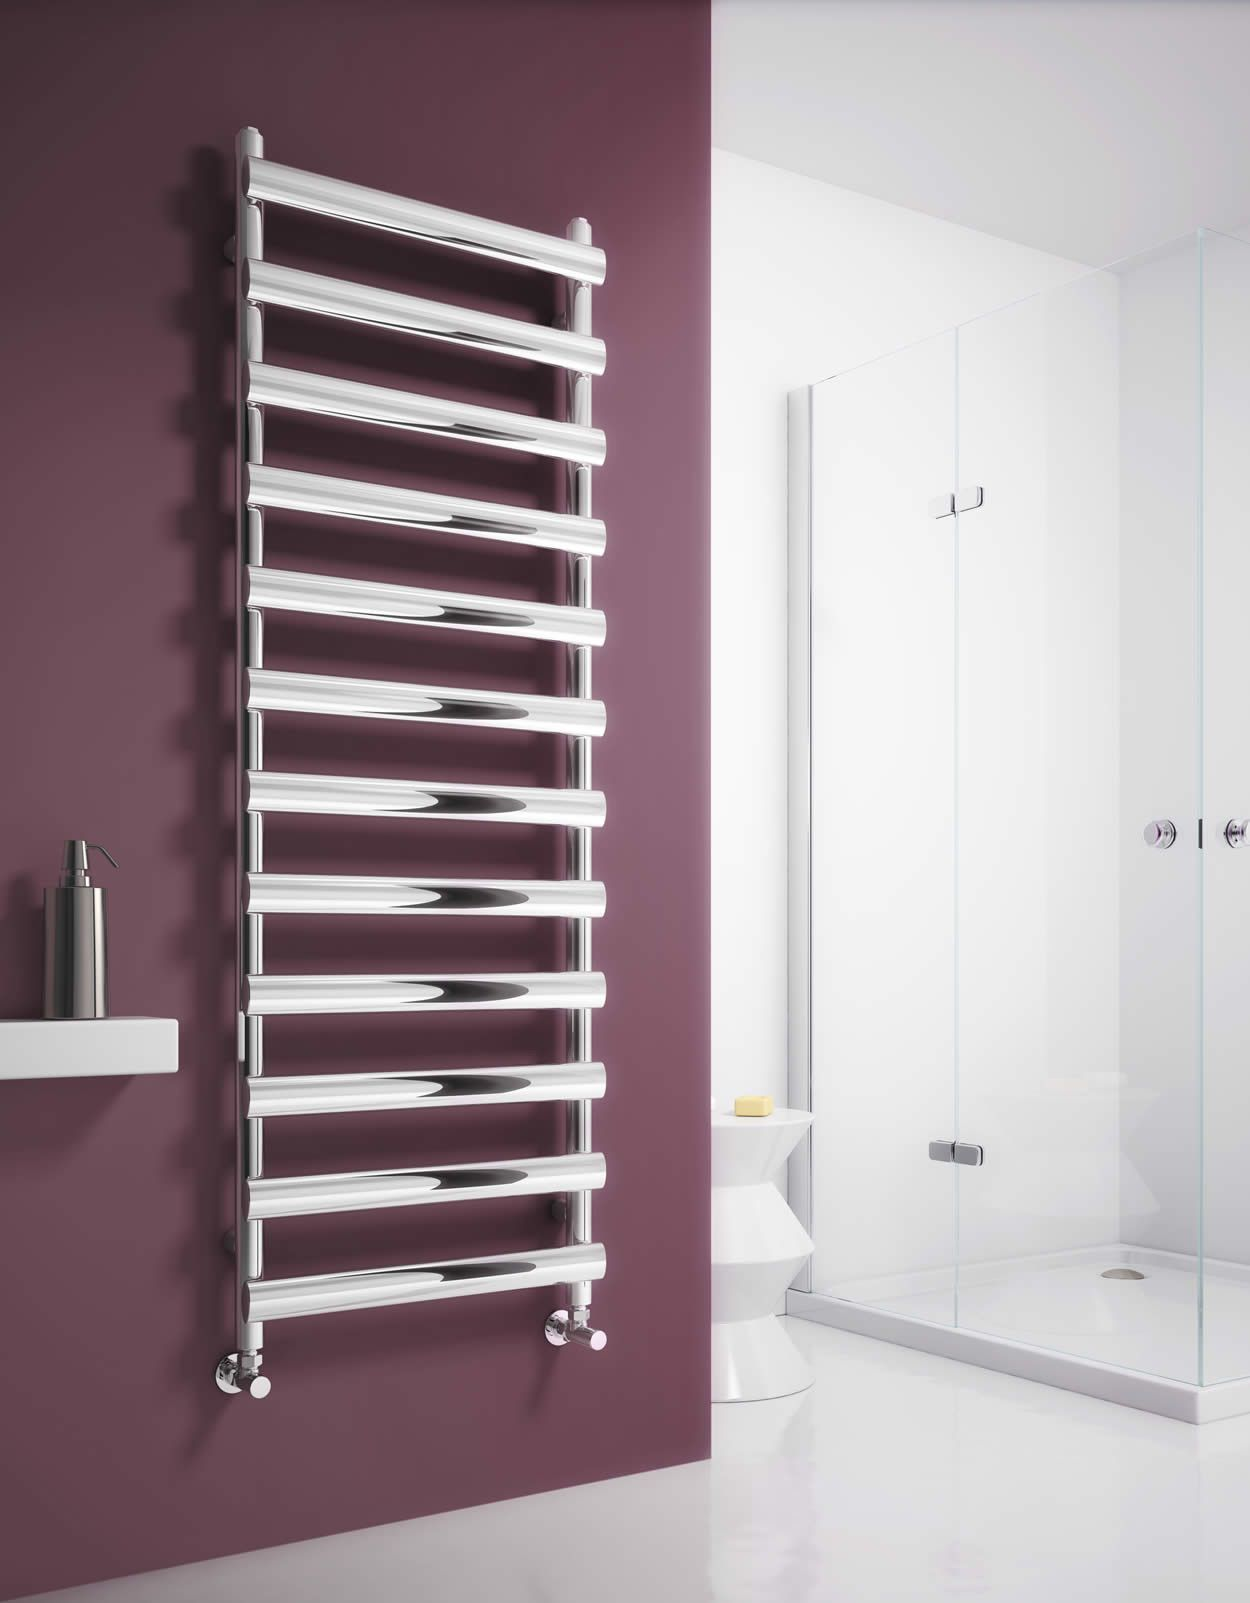 Shop BELFRY at Wayfair.co.uk for a zillion options to meet your